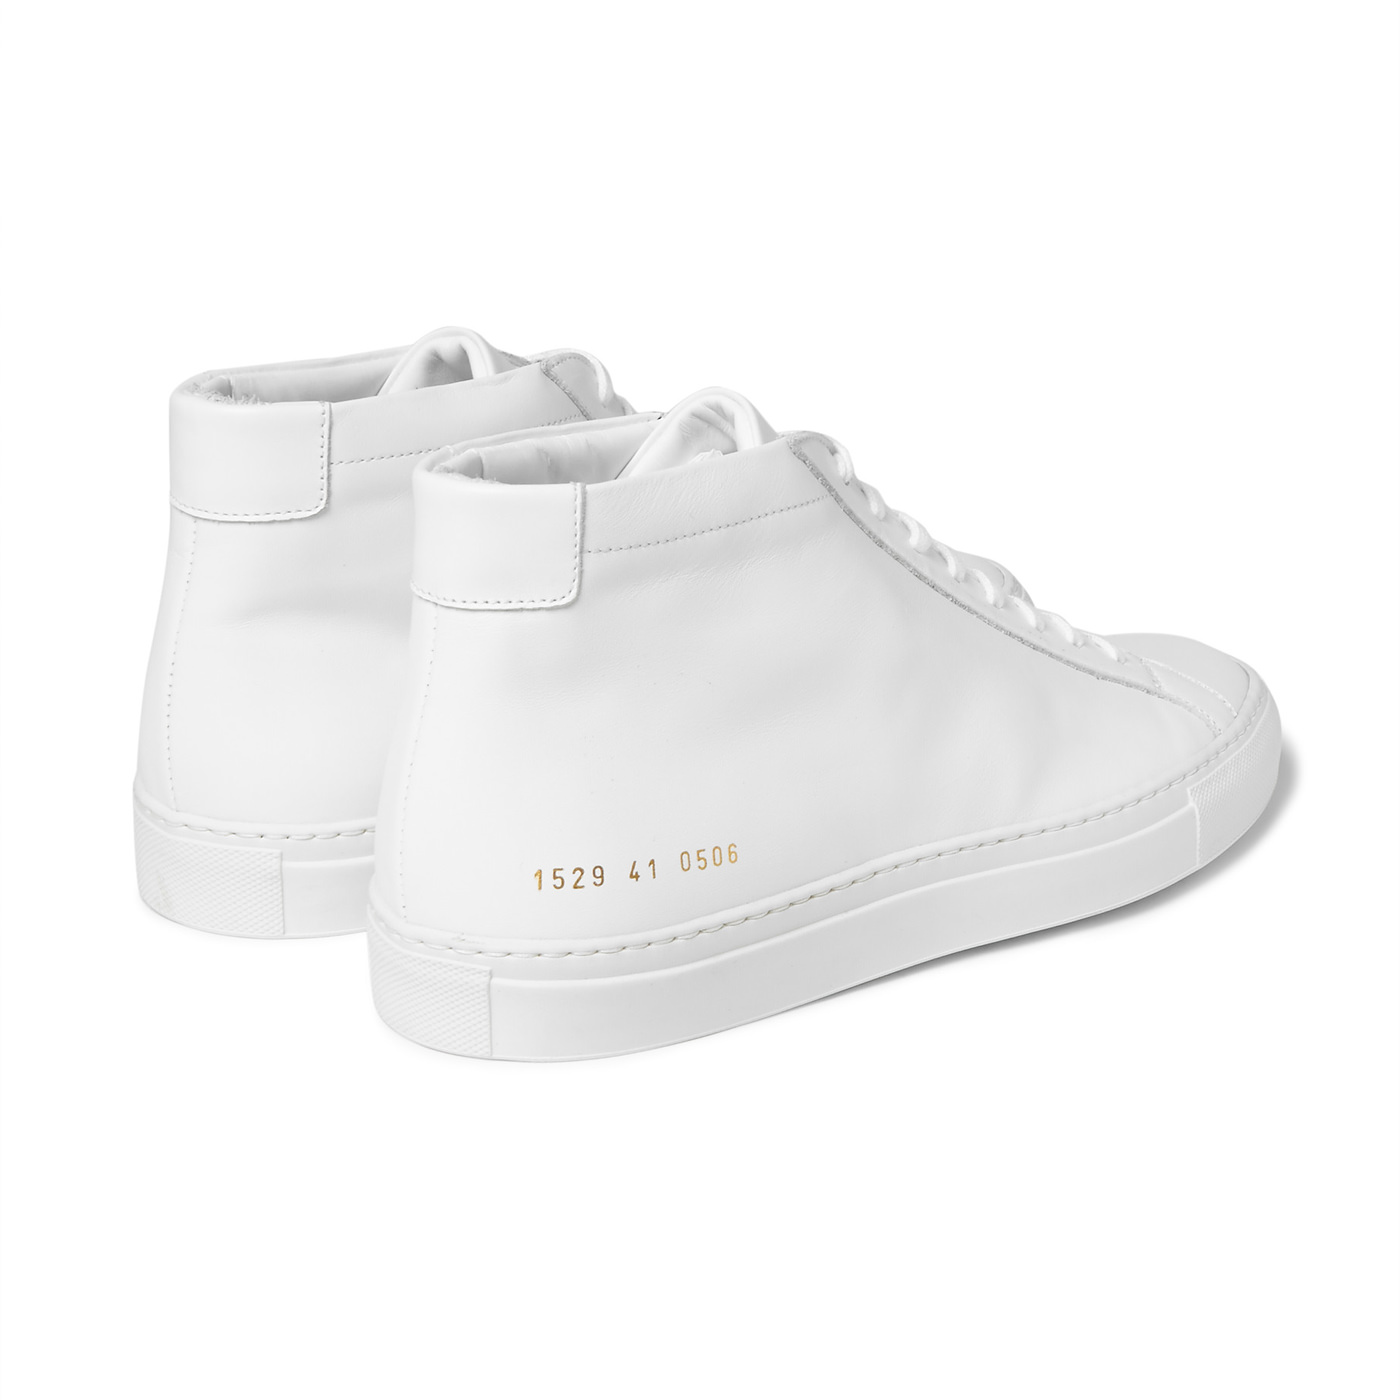 Style Mr Porter Sneakers Common Projects Achilles Cuir Blanc